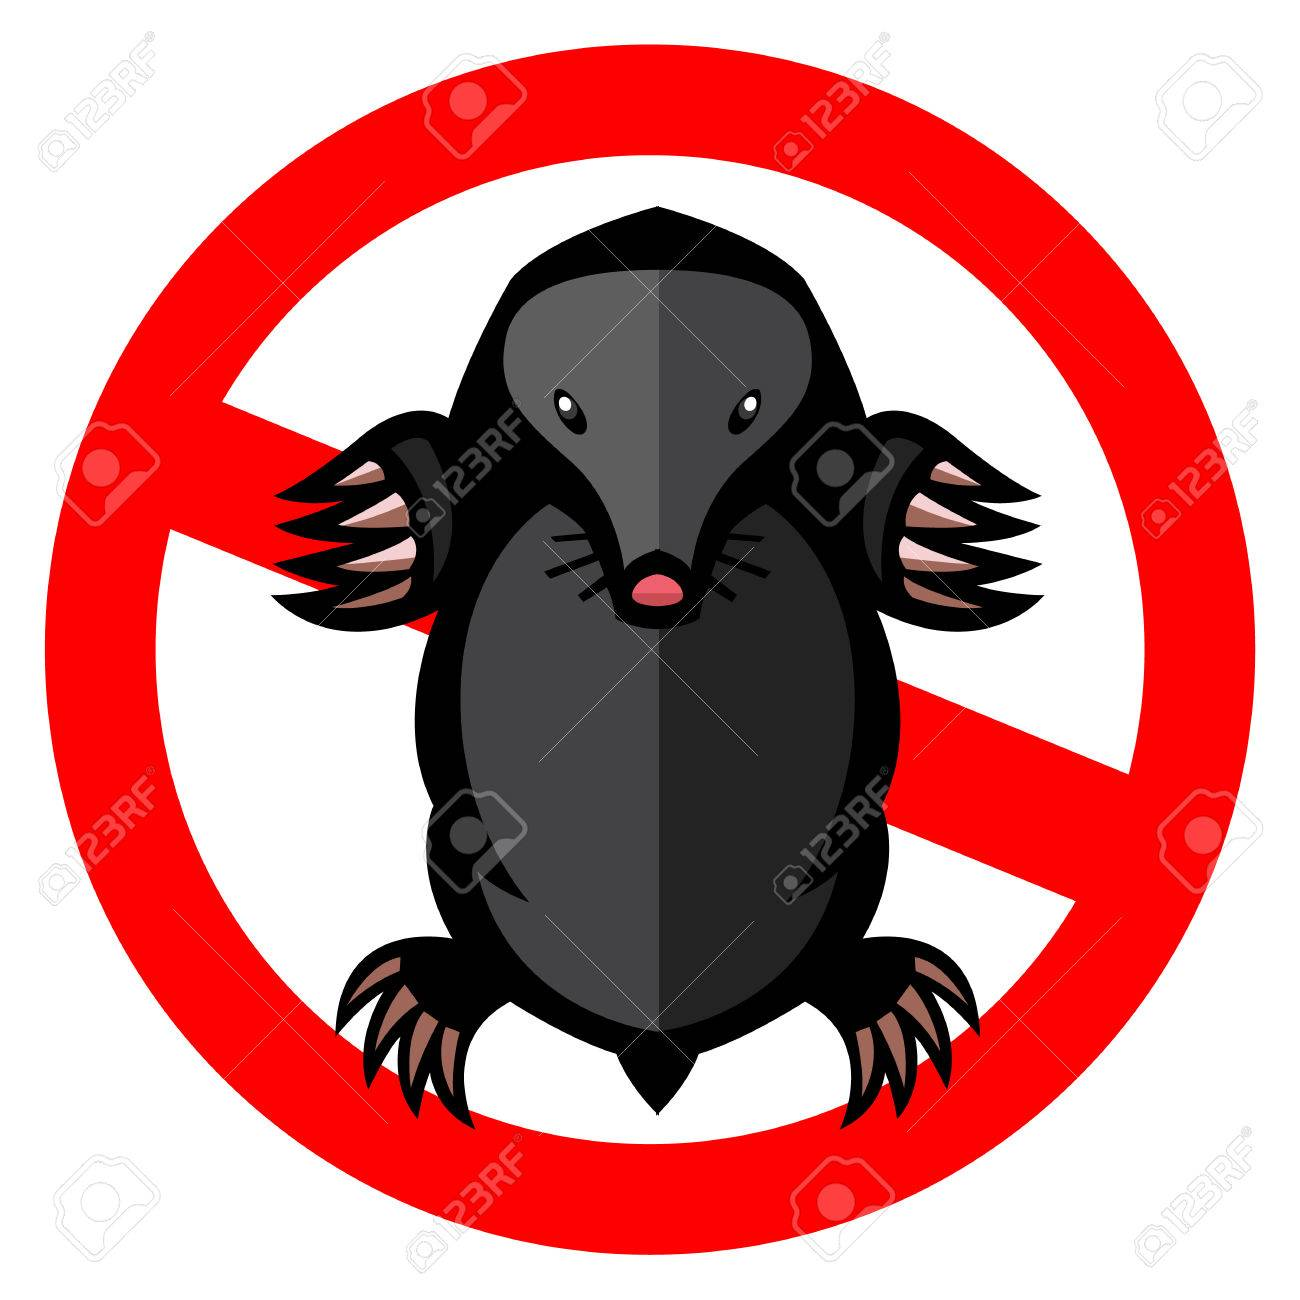 mole pest animal vector illustration - set of household pests in pure style - 51170253